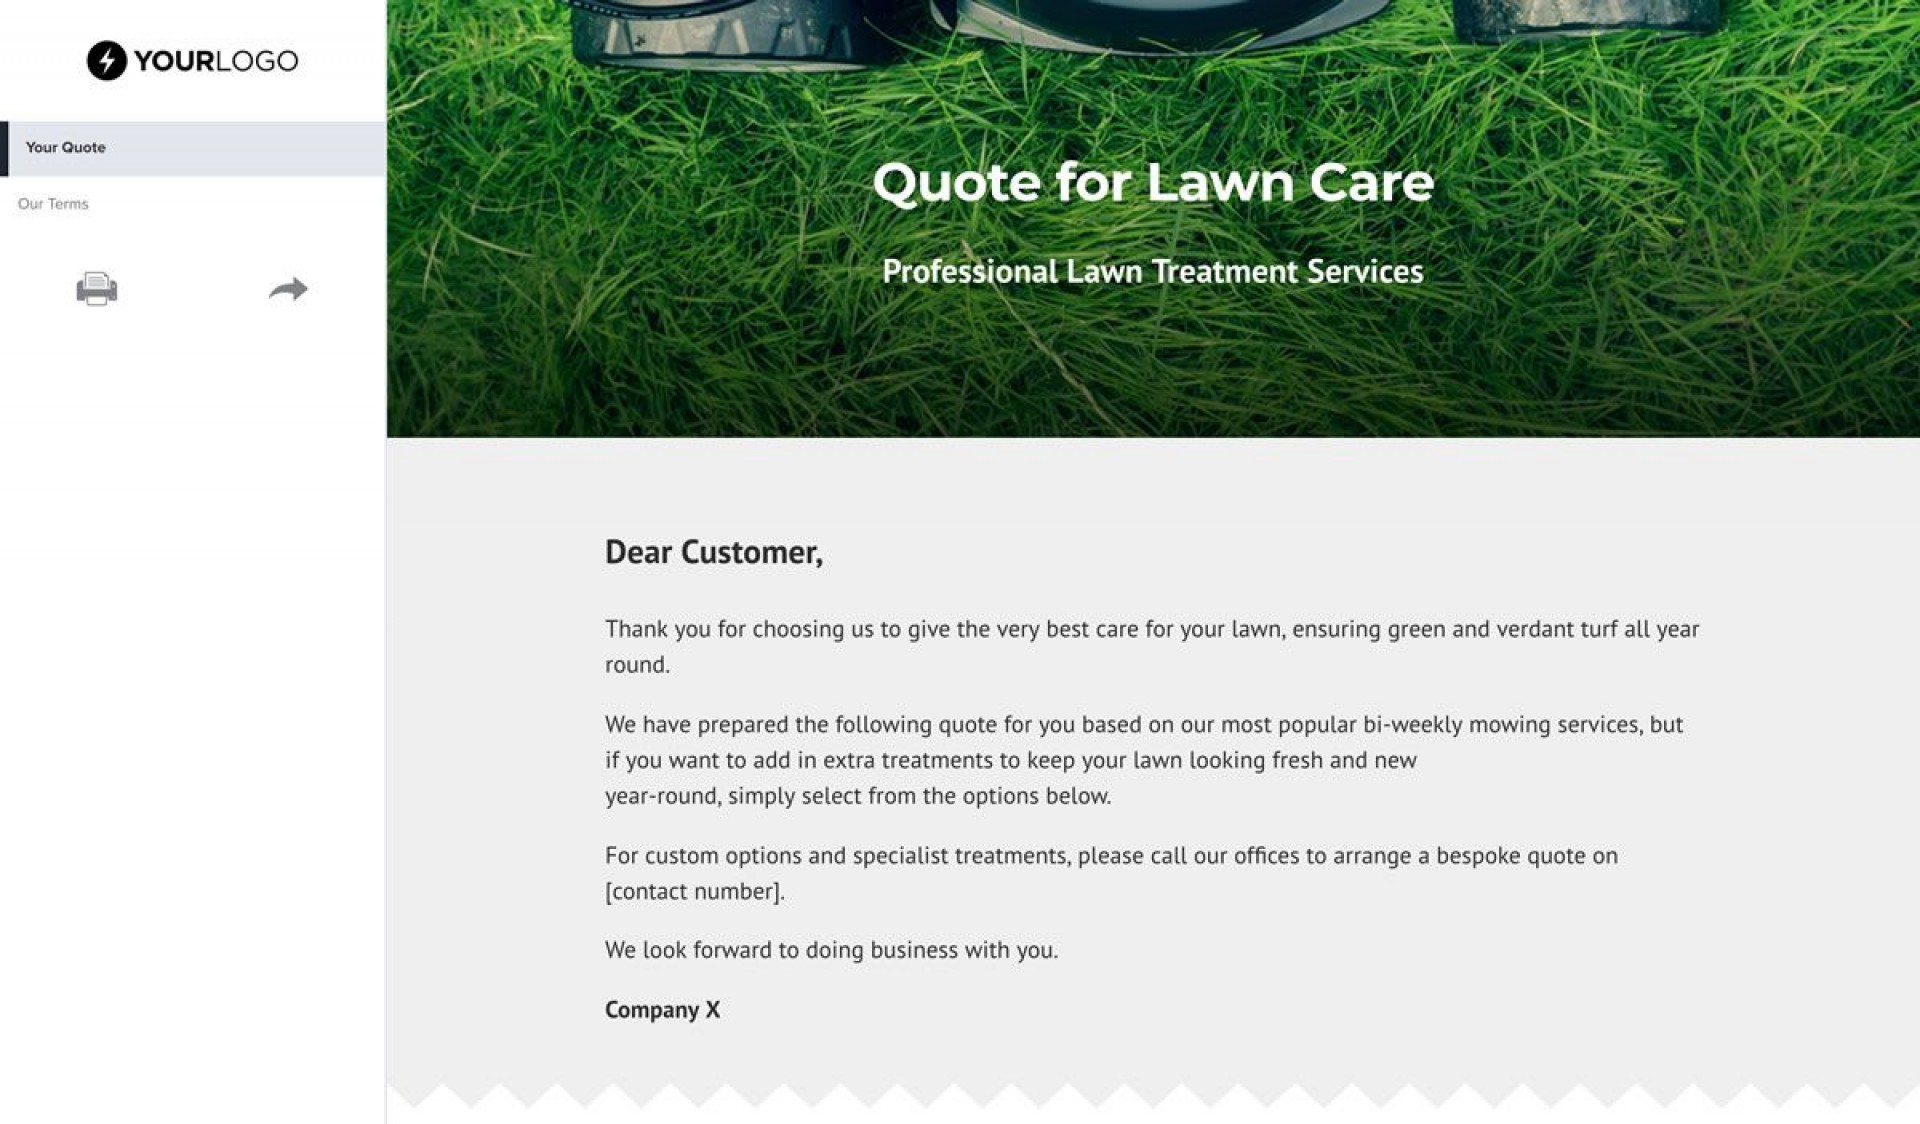 001 Awesome Lawn Care Bid Template High Def  Sheet Commercial Service Proposal Free1920